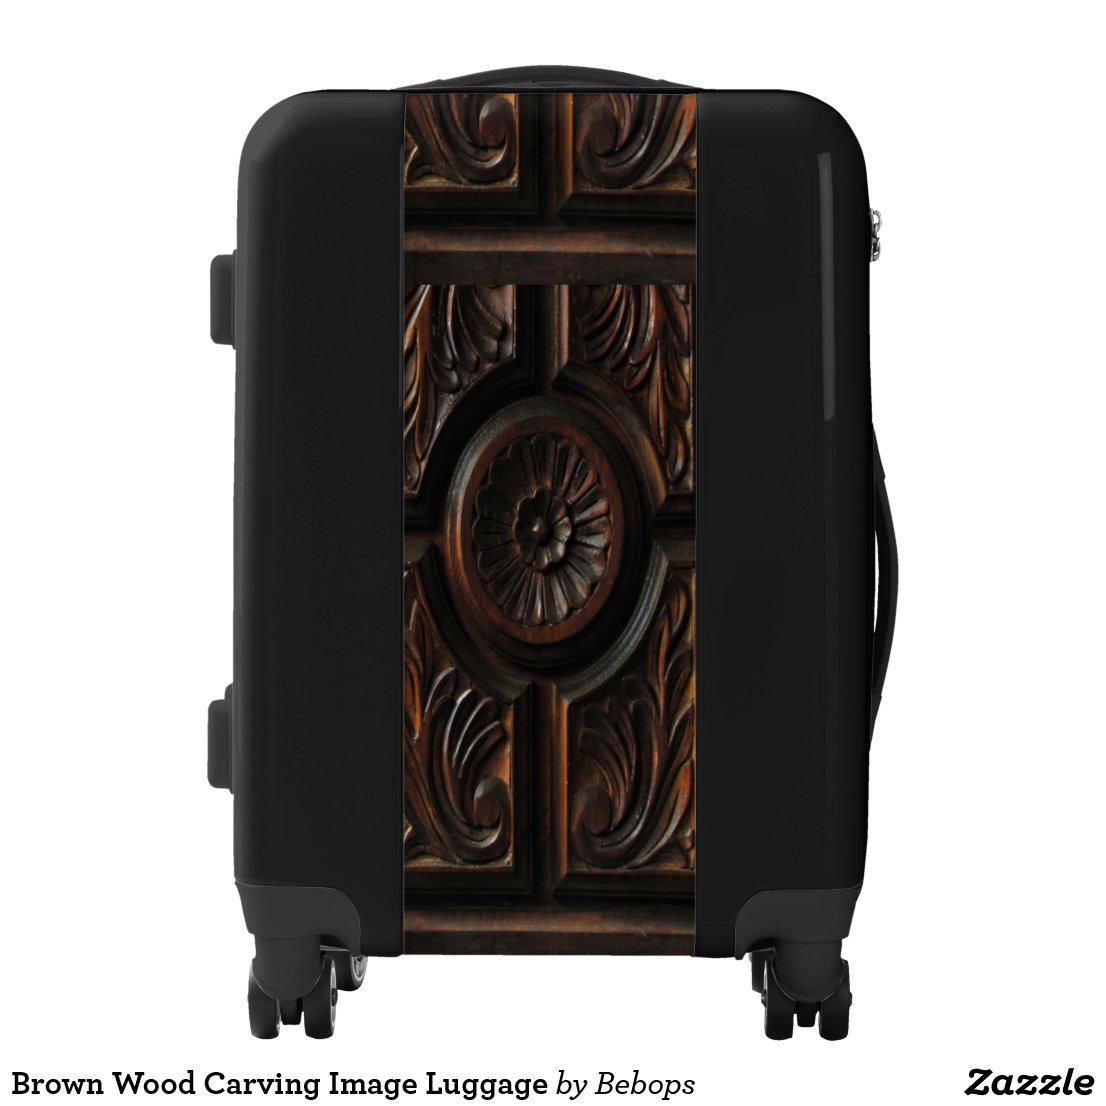 Brown Wood Carving Image Luggage